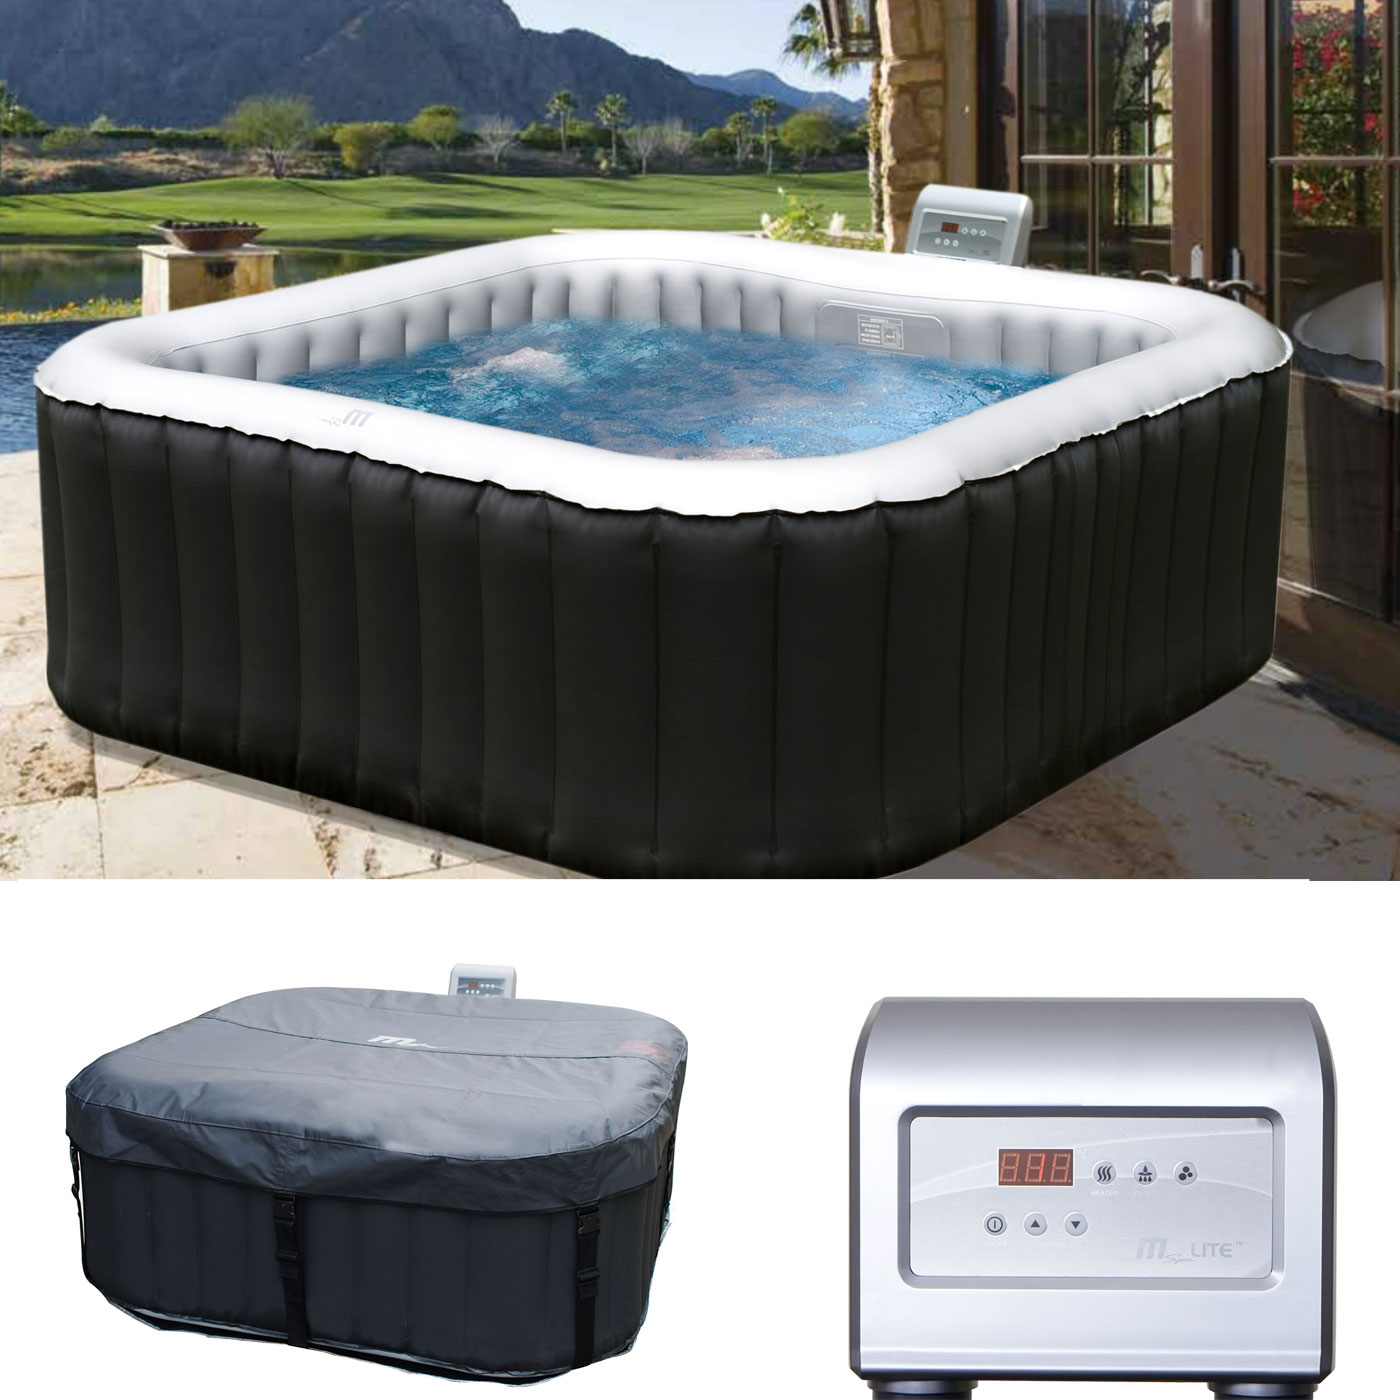 whirlpool mspa hwc a62 4 2 personen in outdoor heizbar. Black Bedroom Furniture Sets. Home Design Ideas